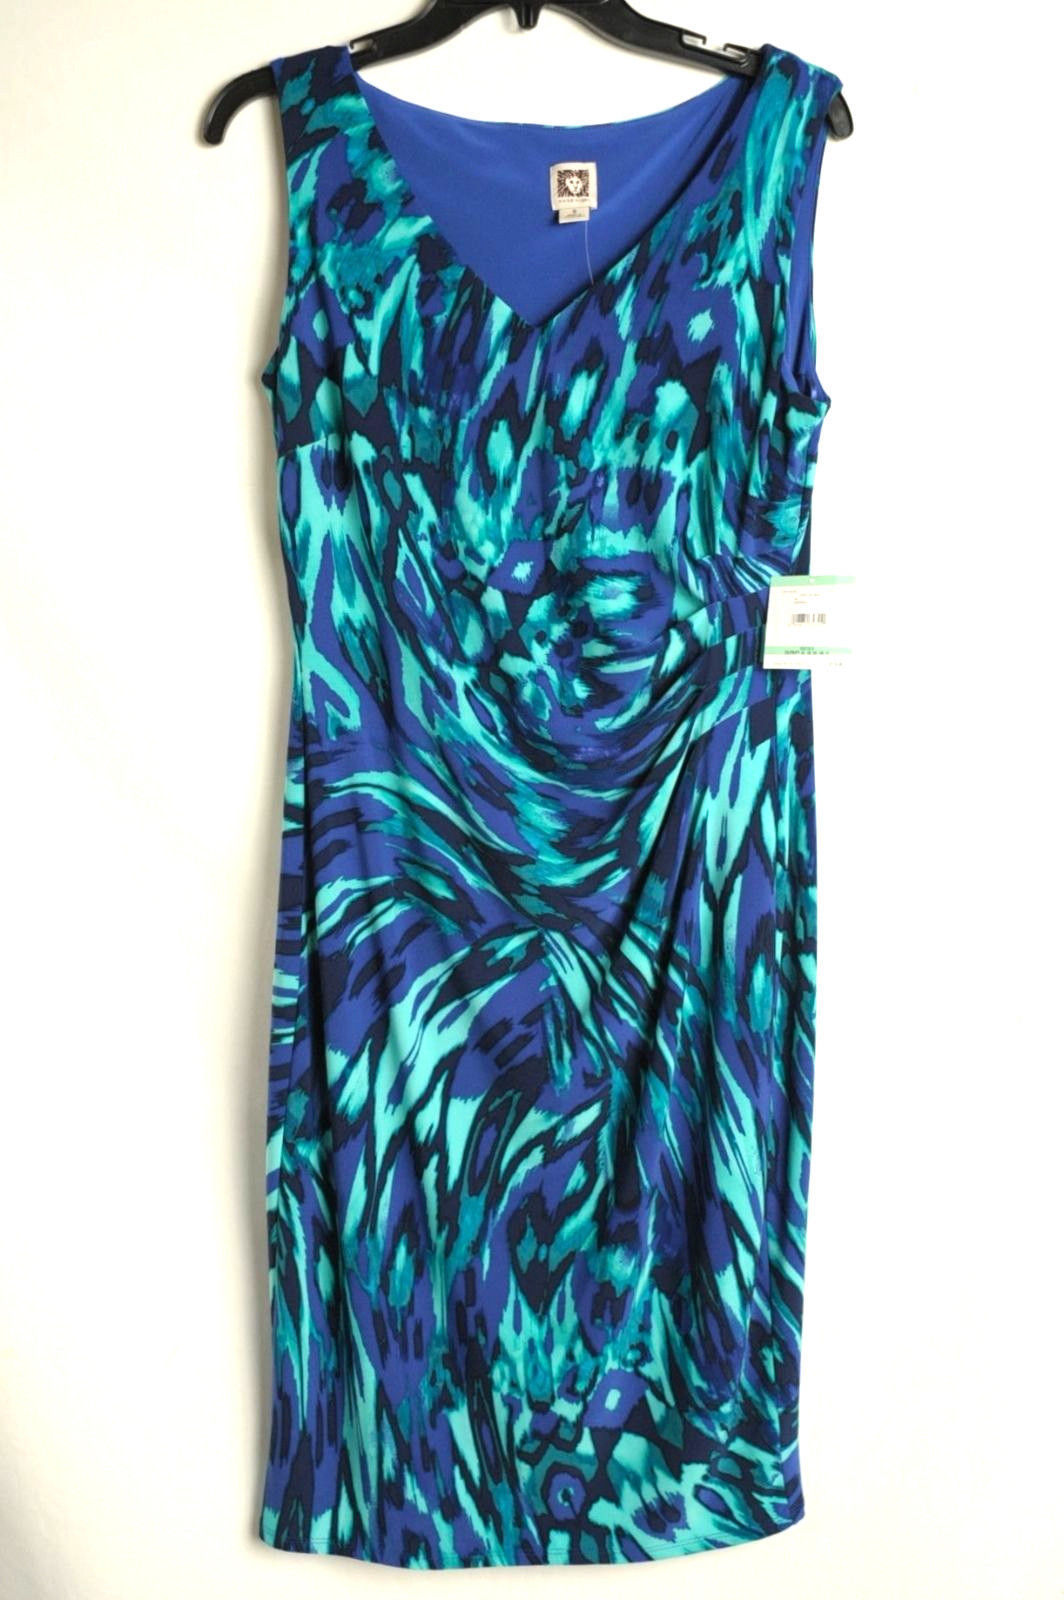 NWT Anne Klein GYPSY Teal Blue Dress Womens 8 $119  Knee-Length Sleeveless